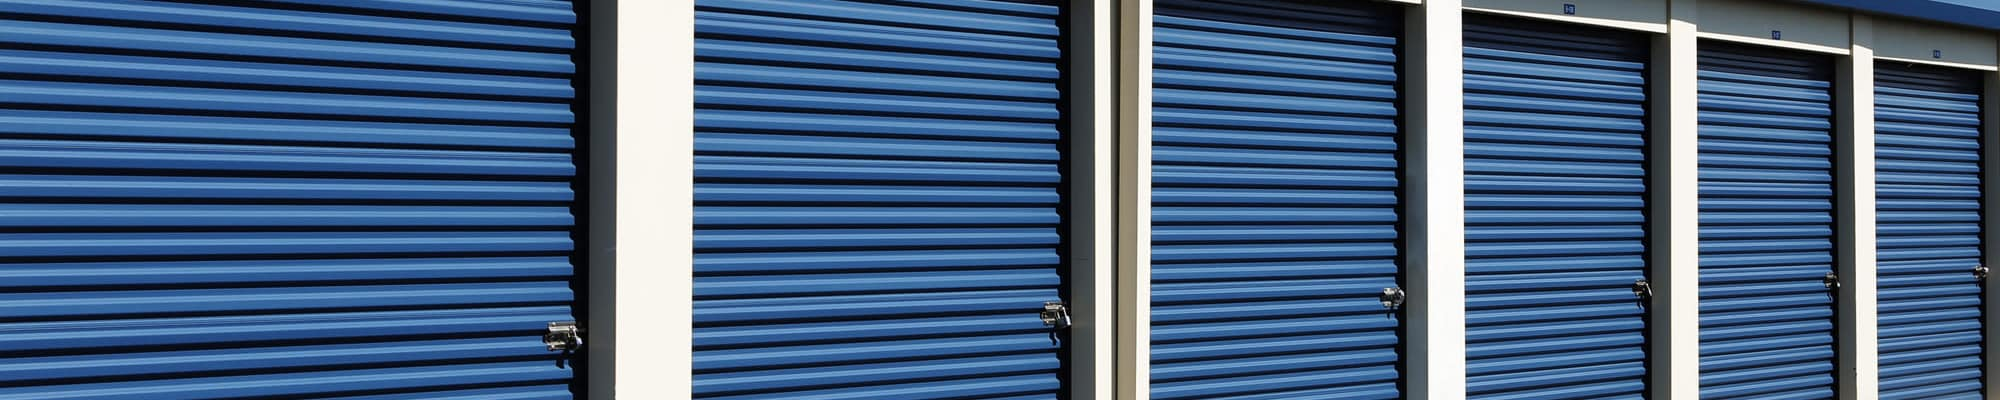 Business storage at Jupiter Park Self Storage in Jupiter, Florida